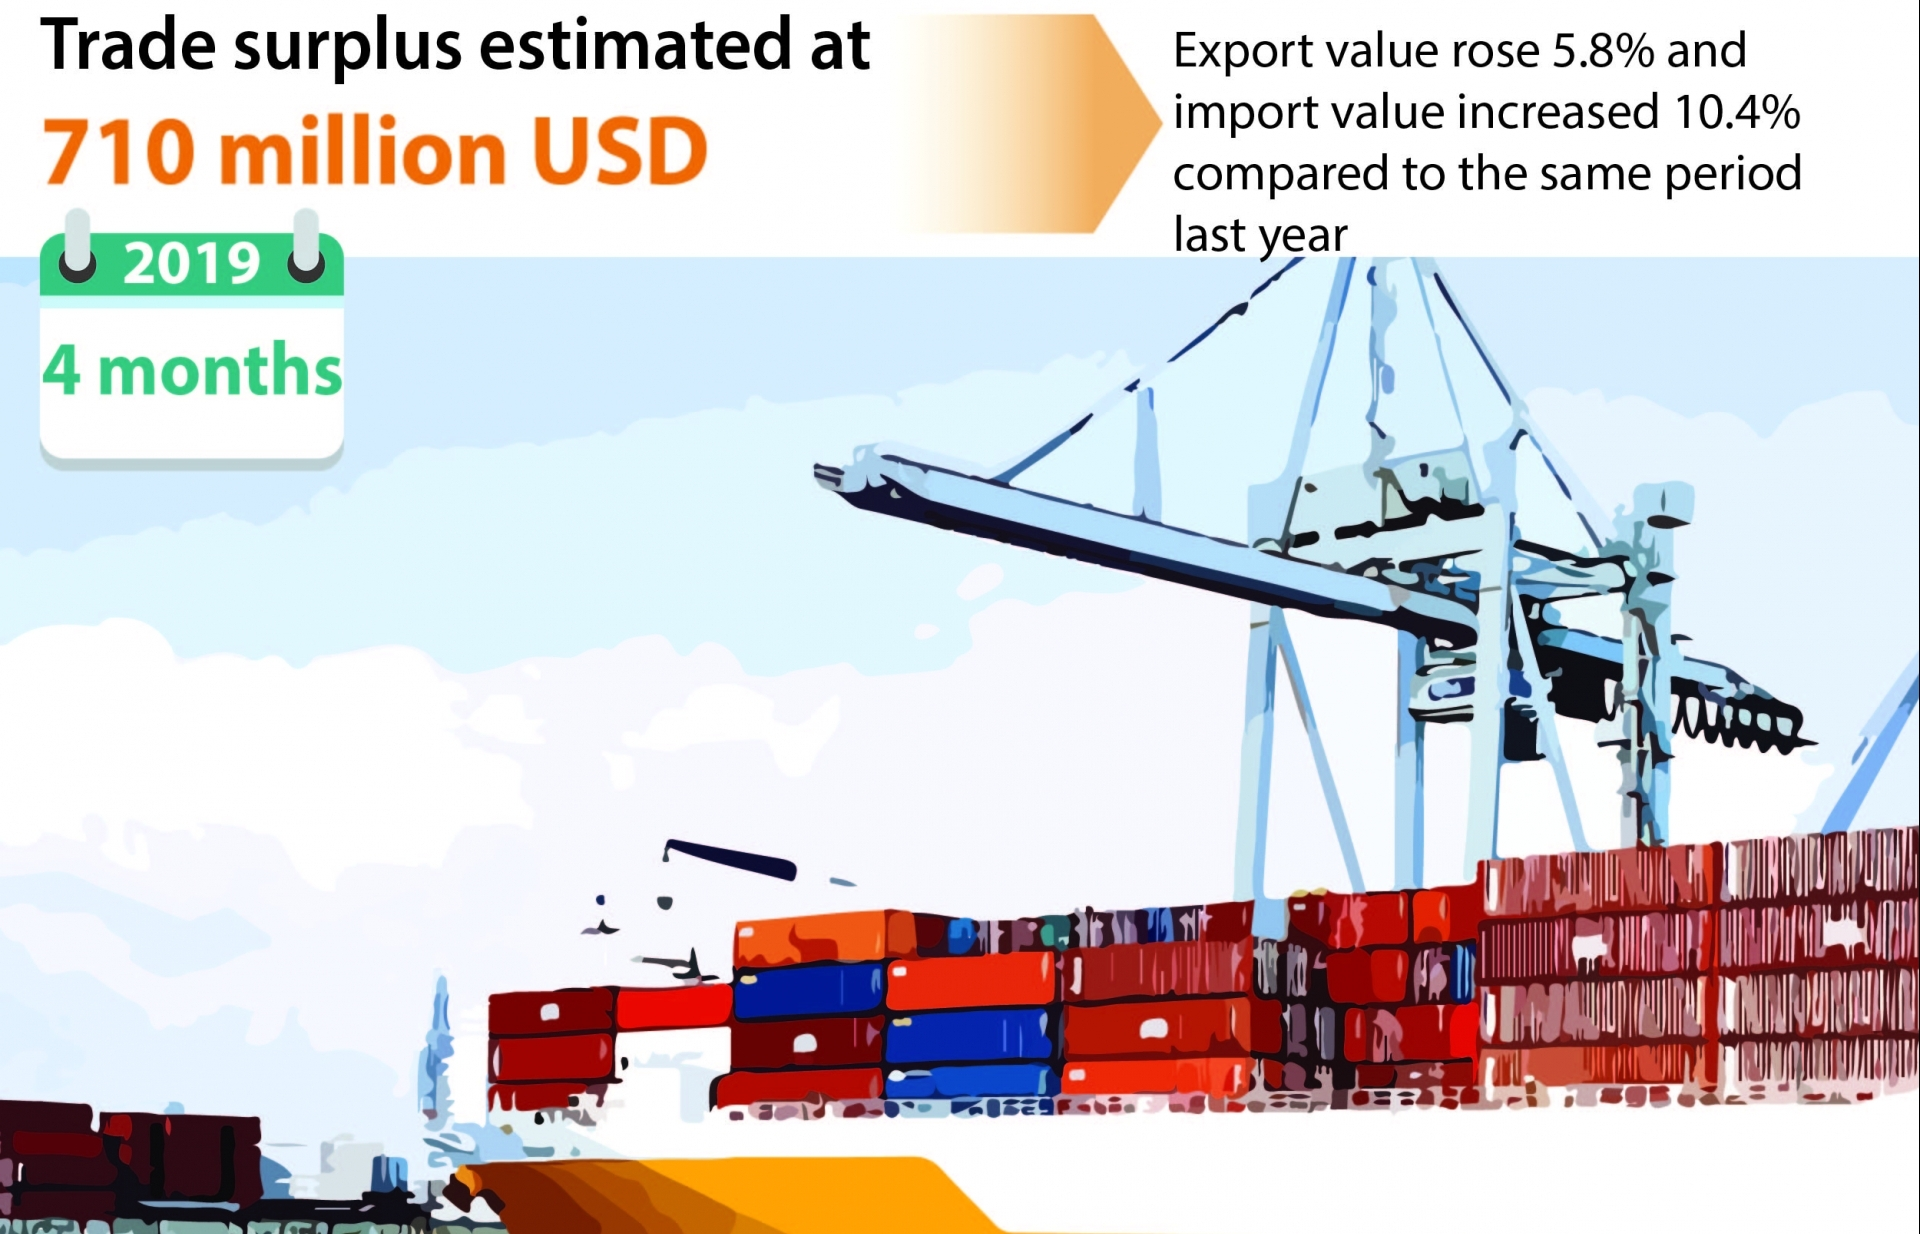 trade surplus estimated at 710 million usd